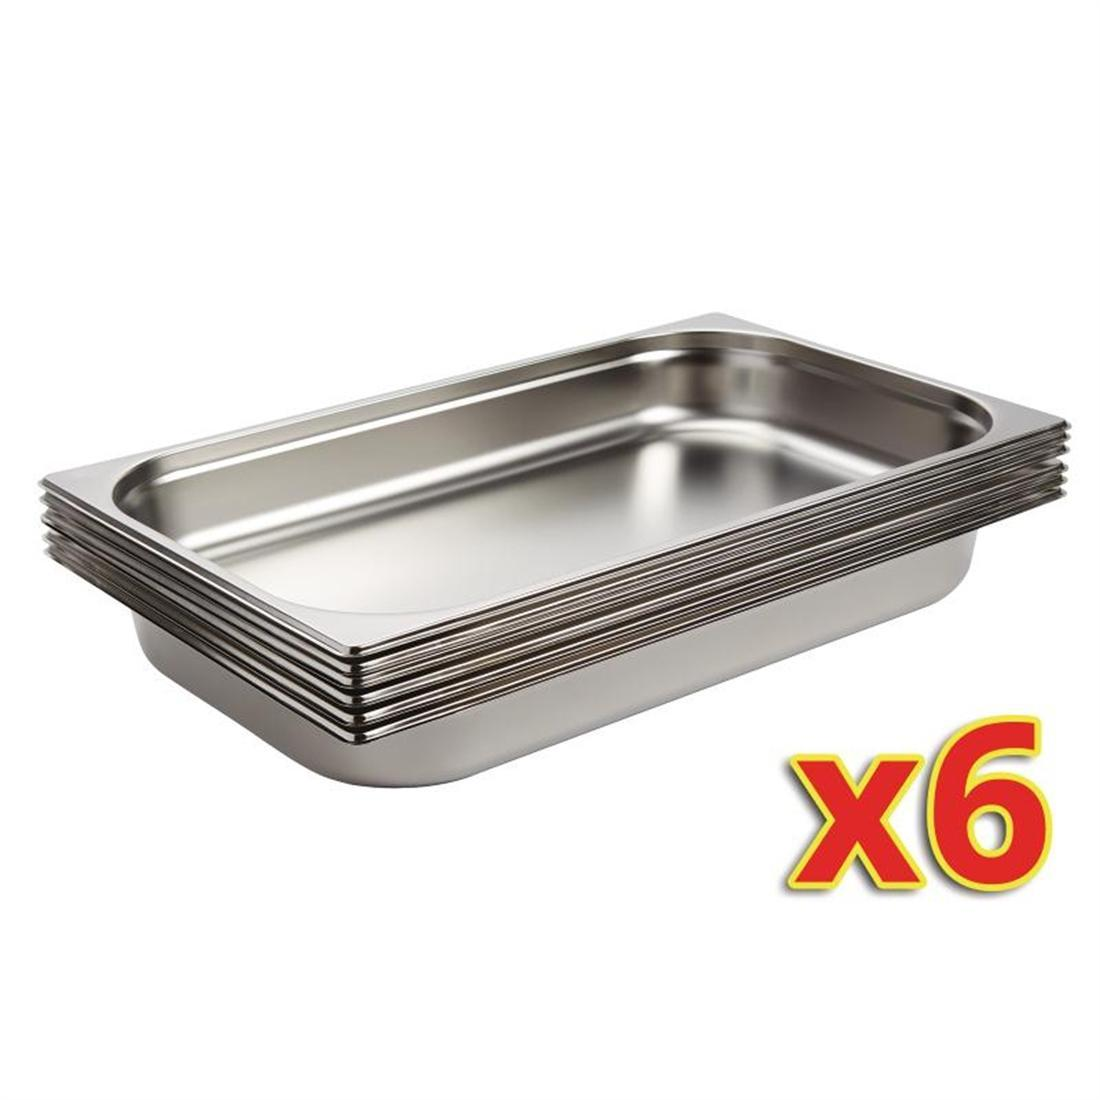 Vogue Stainless Steel 1/1 Gastronorm Pans 65mm Set of 6 - S895